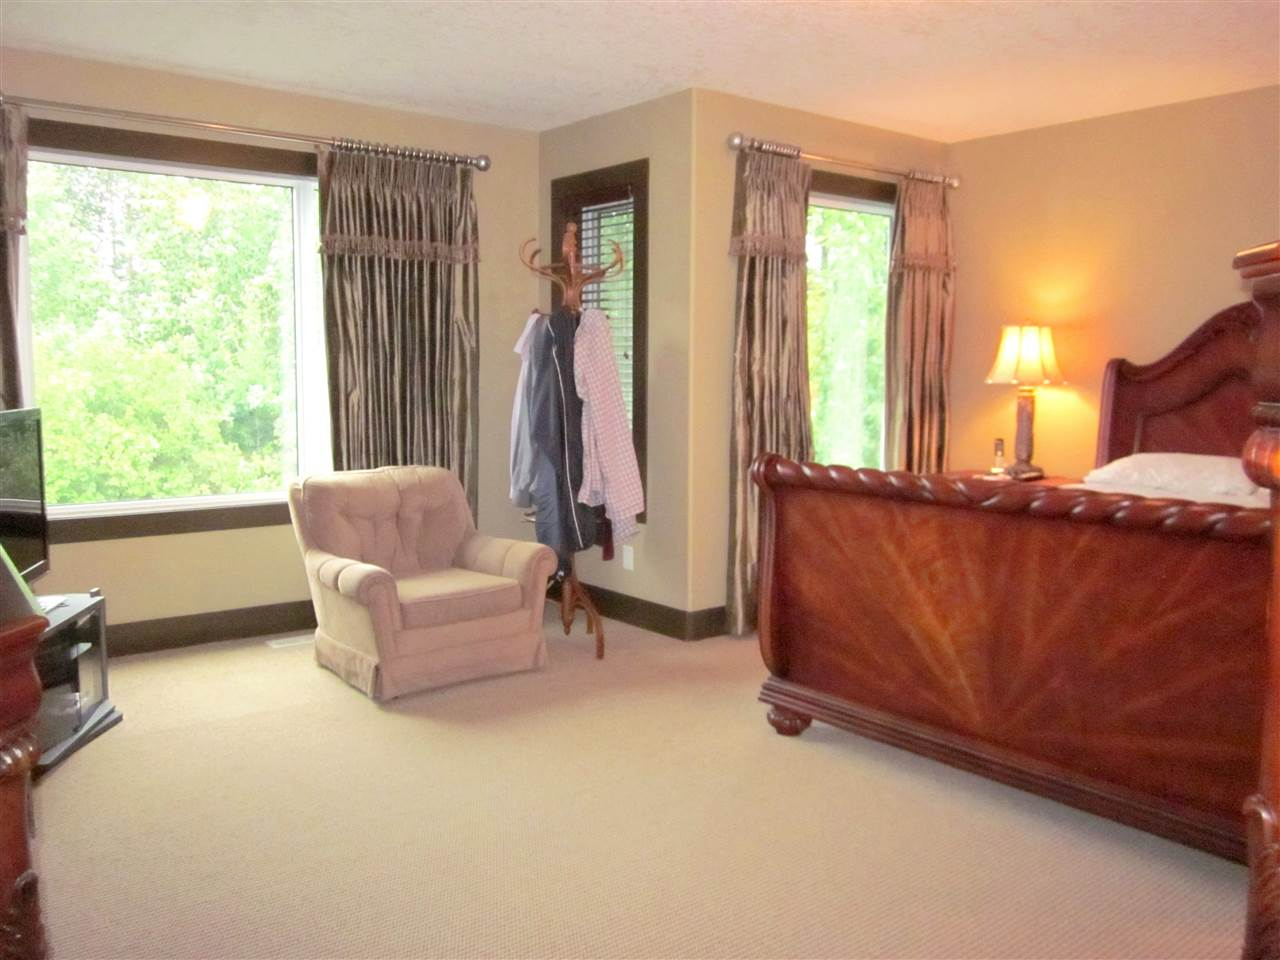 Master bedroom has view of the beautifully landscaped backyard and the treed area.